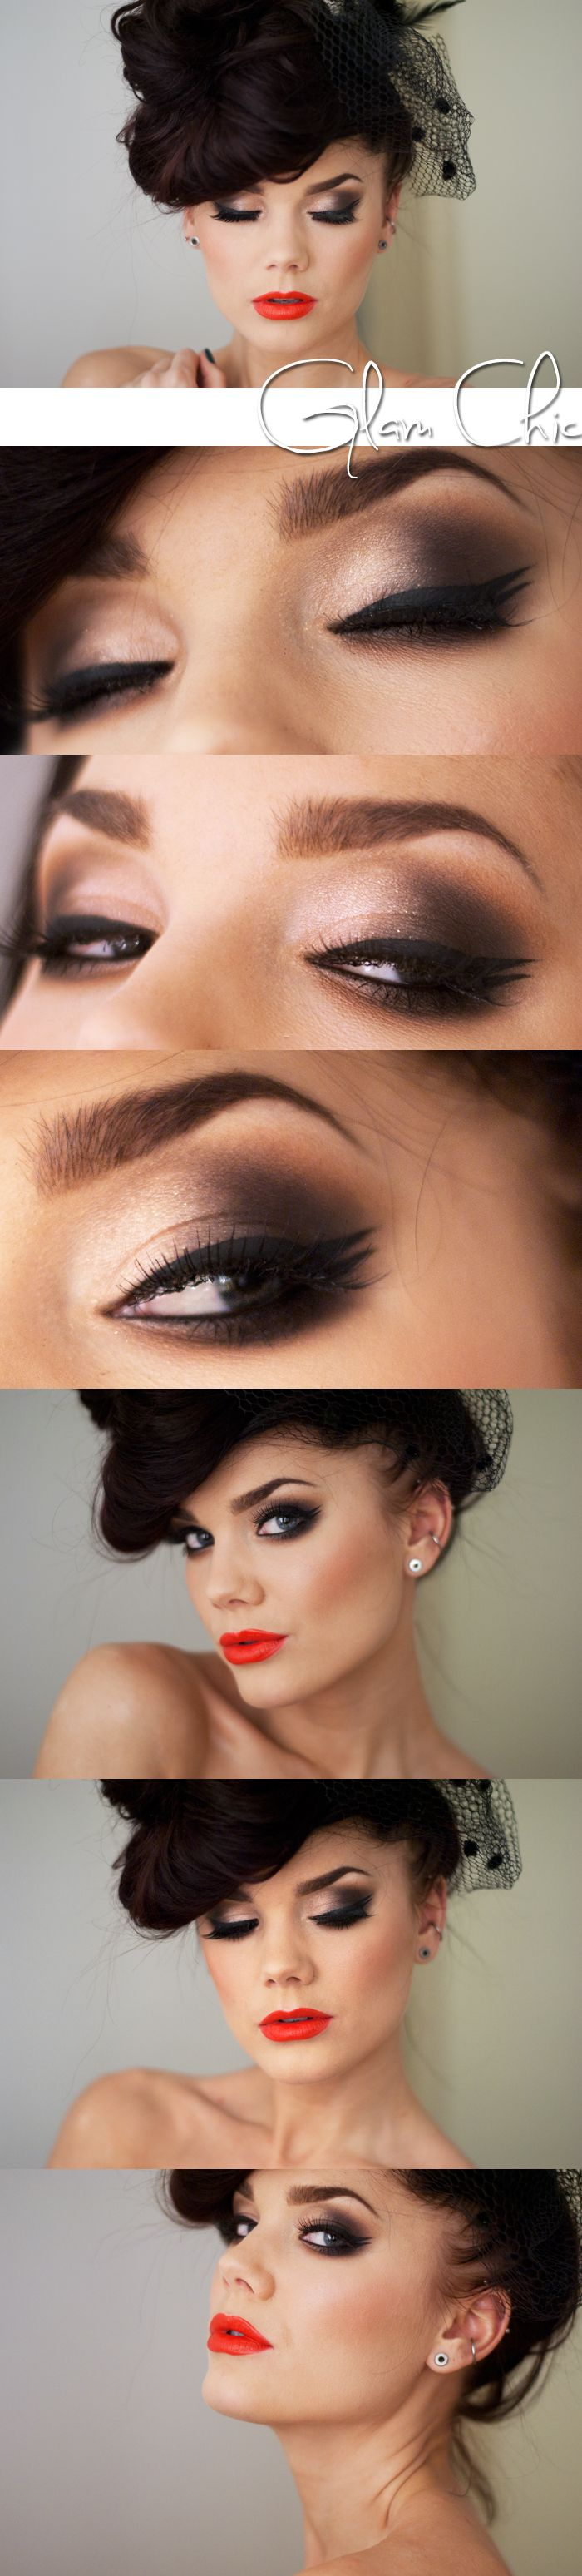 Yesterday's Look - I just can't stop looking at your face, so beautiful  Linda Hallberg - makeup artist